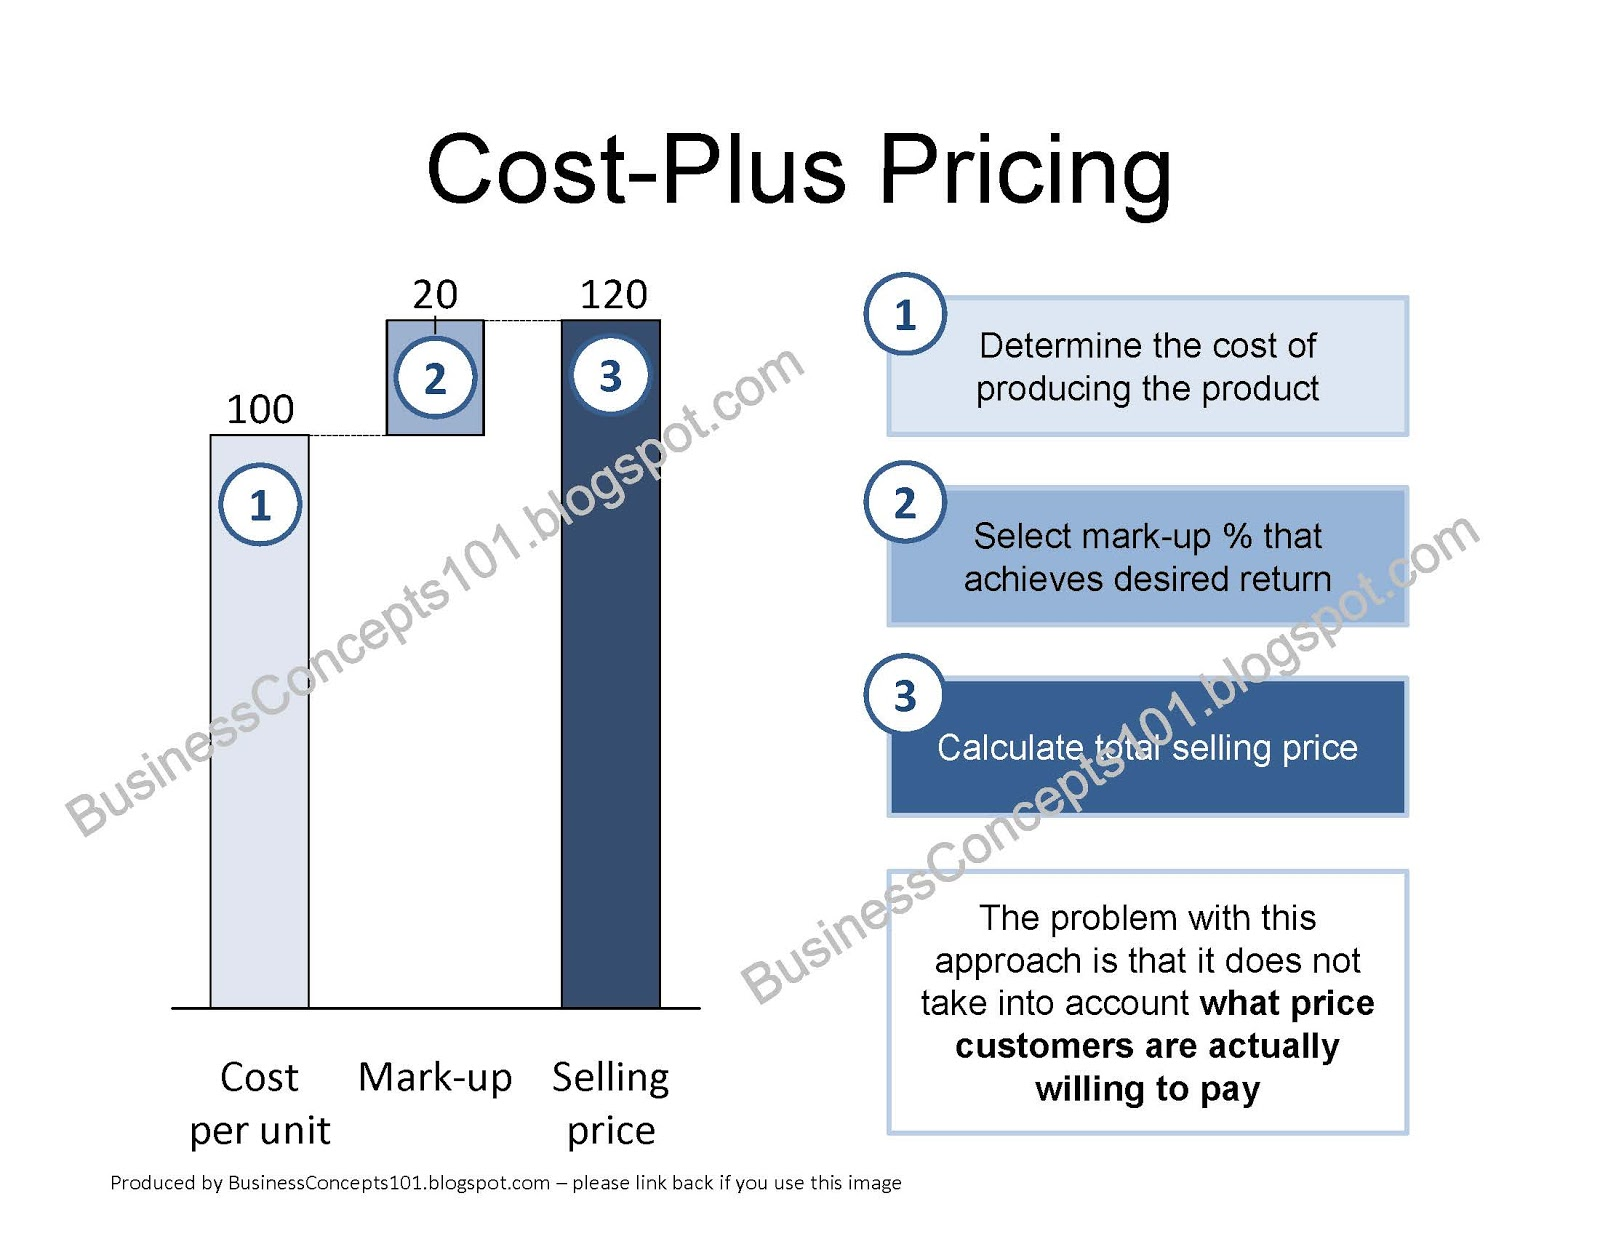 target costing and cost plus pricing Target costing as a pricing strategy: target costing is also effectively used in conjunction with marketing decisions to engage in price skimming or penetration pricing penetration pricing is the pricing of a new product at a low initial price, perhaps even lower than cost, to build market share quickly.